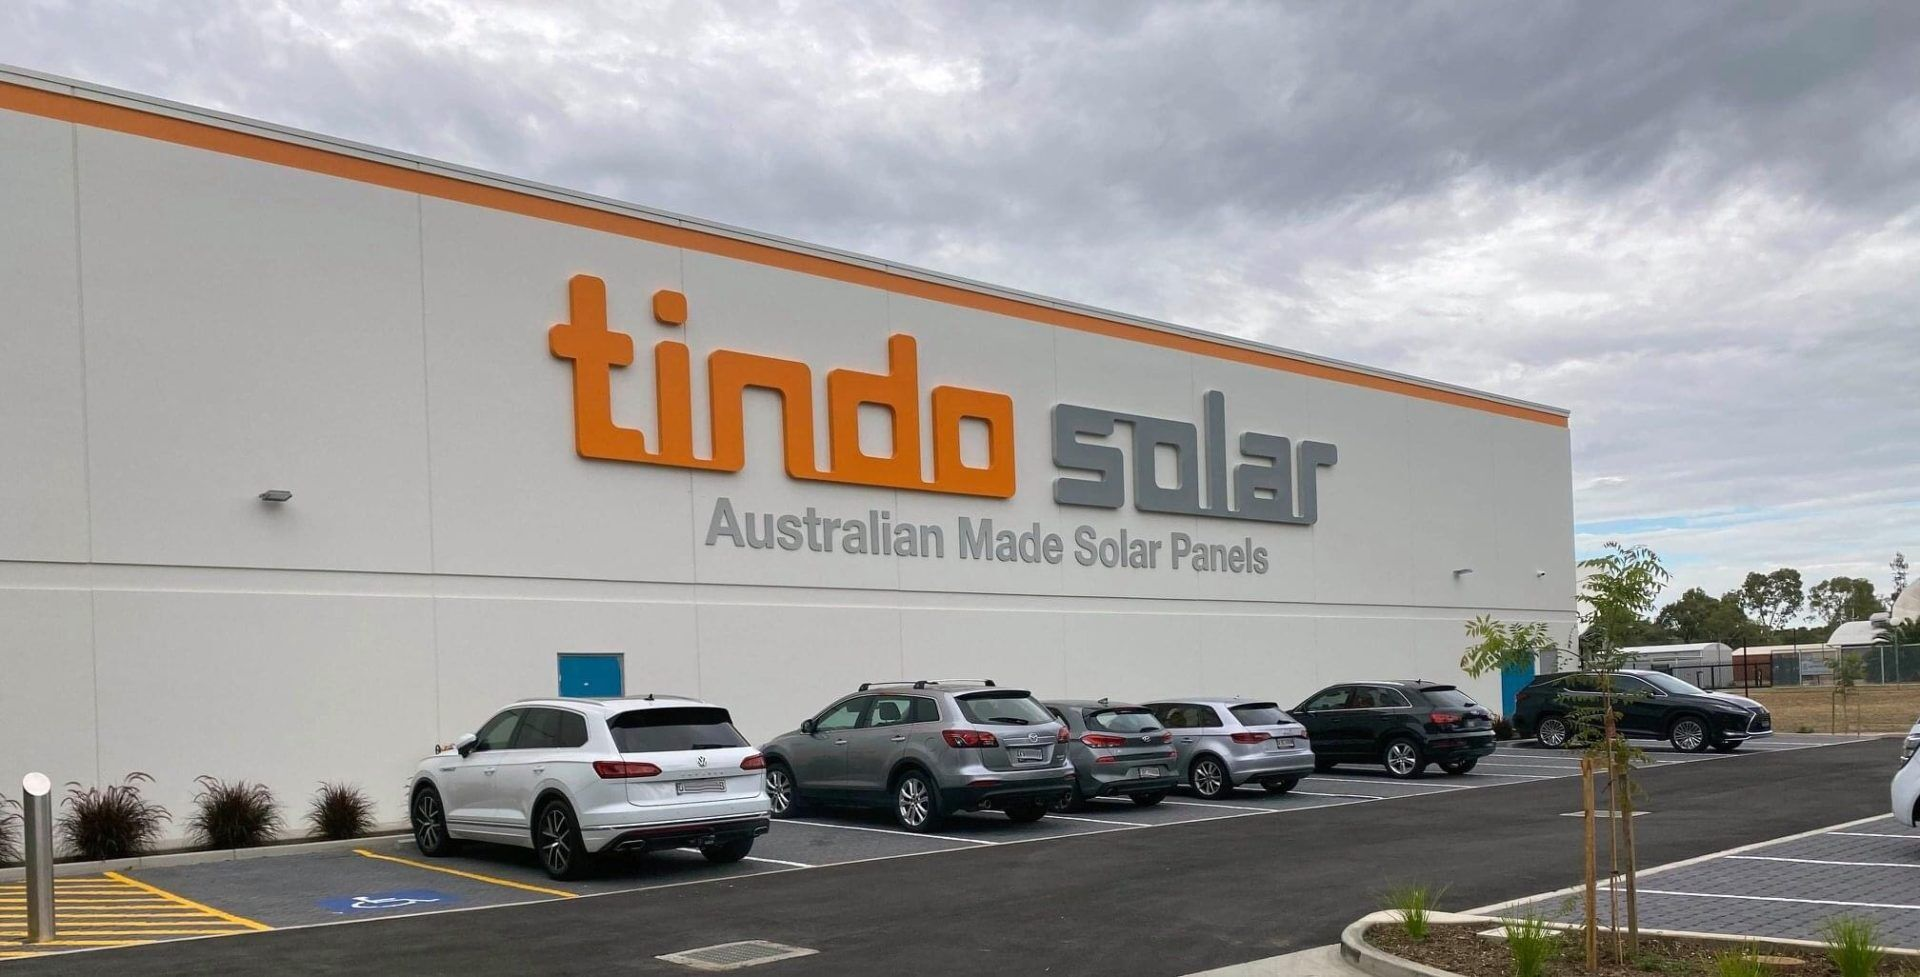 Tindo Solar Panels banner image for product review